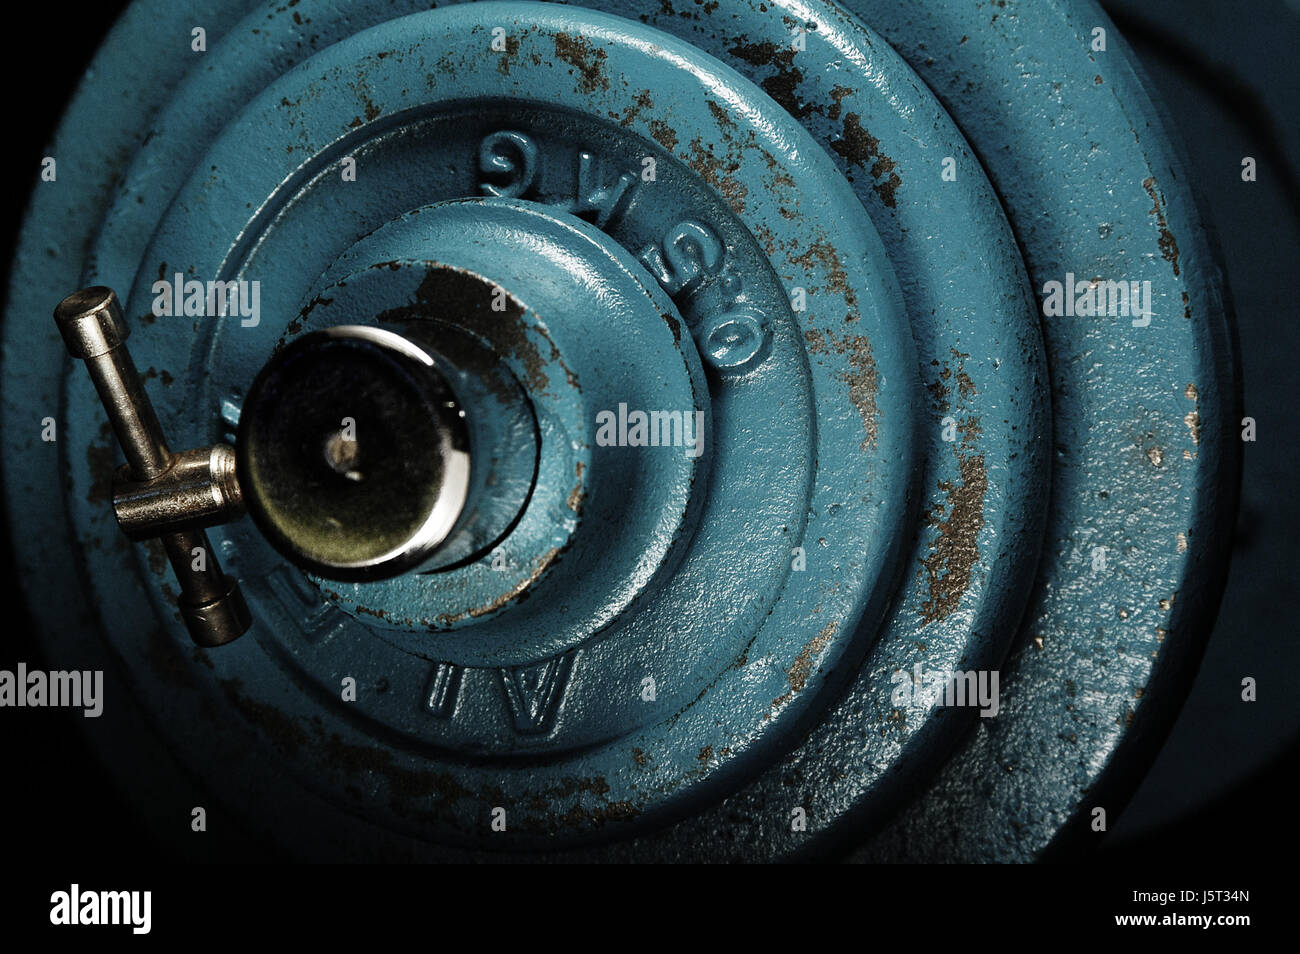 weight (1) - Stock Image